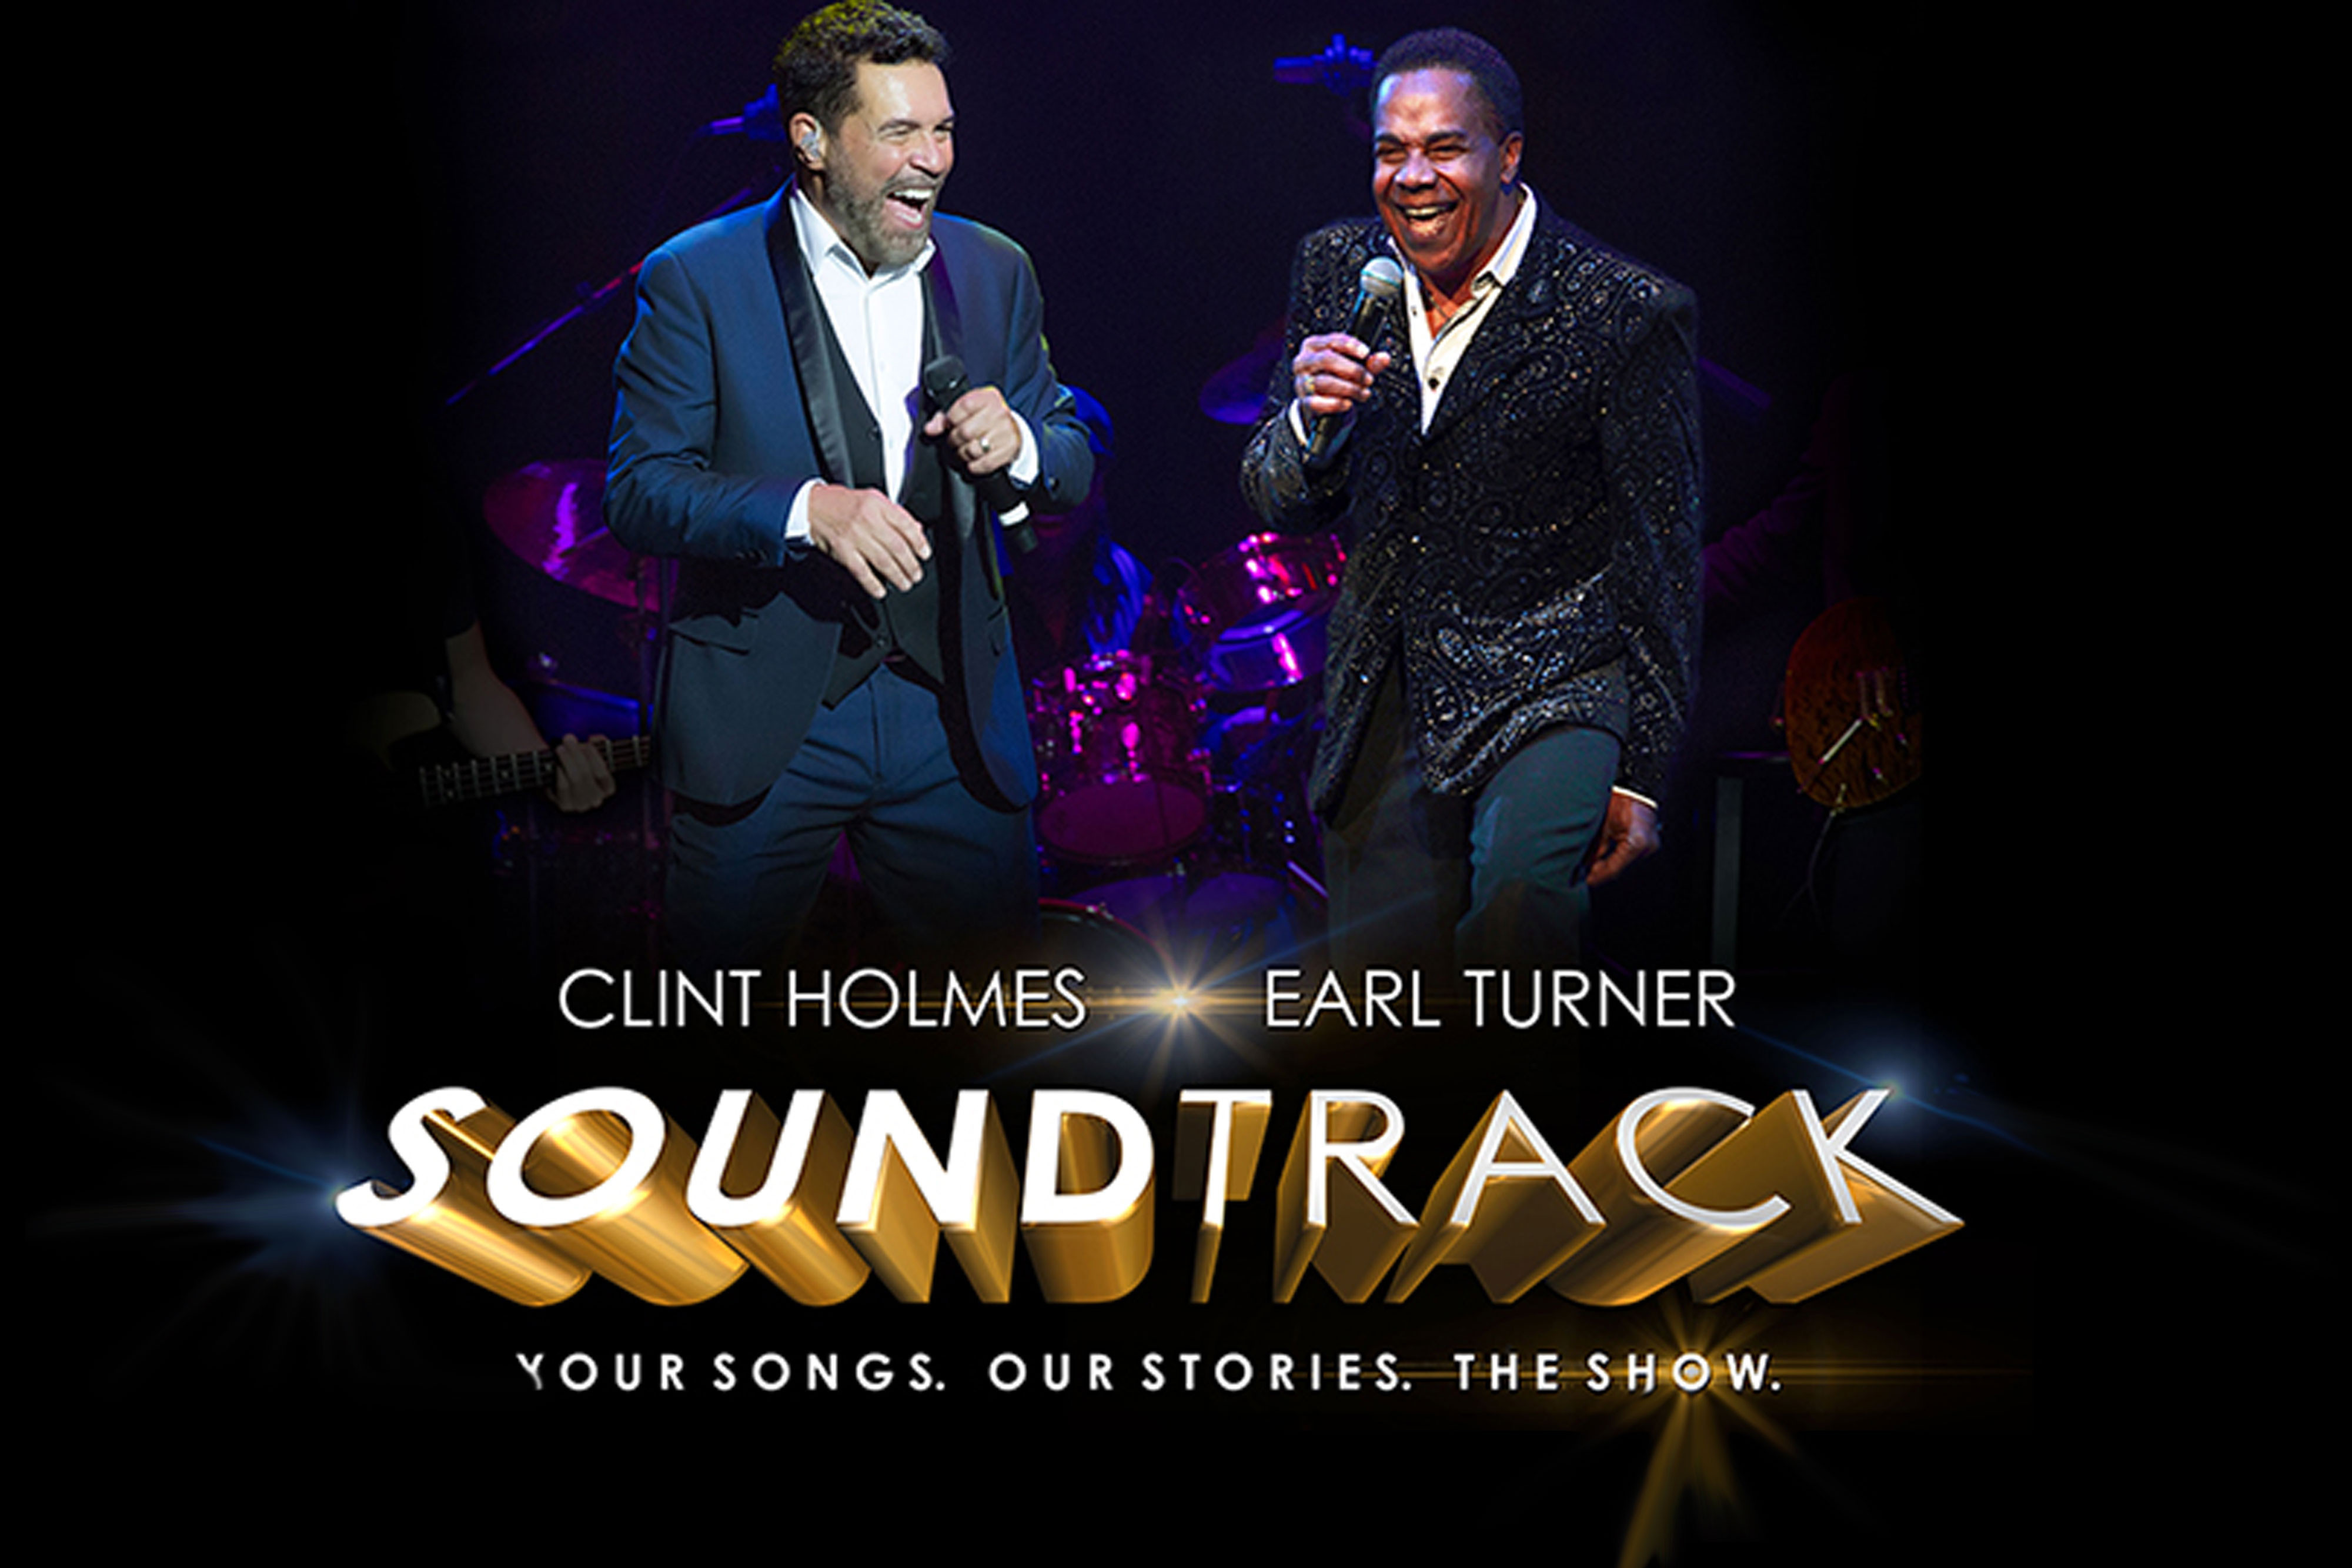 SOUNDTRACK: Your Music. Our Stories. The Show with Clint Holmes and Earl Turner | Westgate Las Vegas Resort & Casino